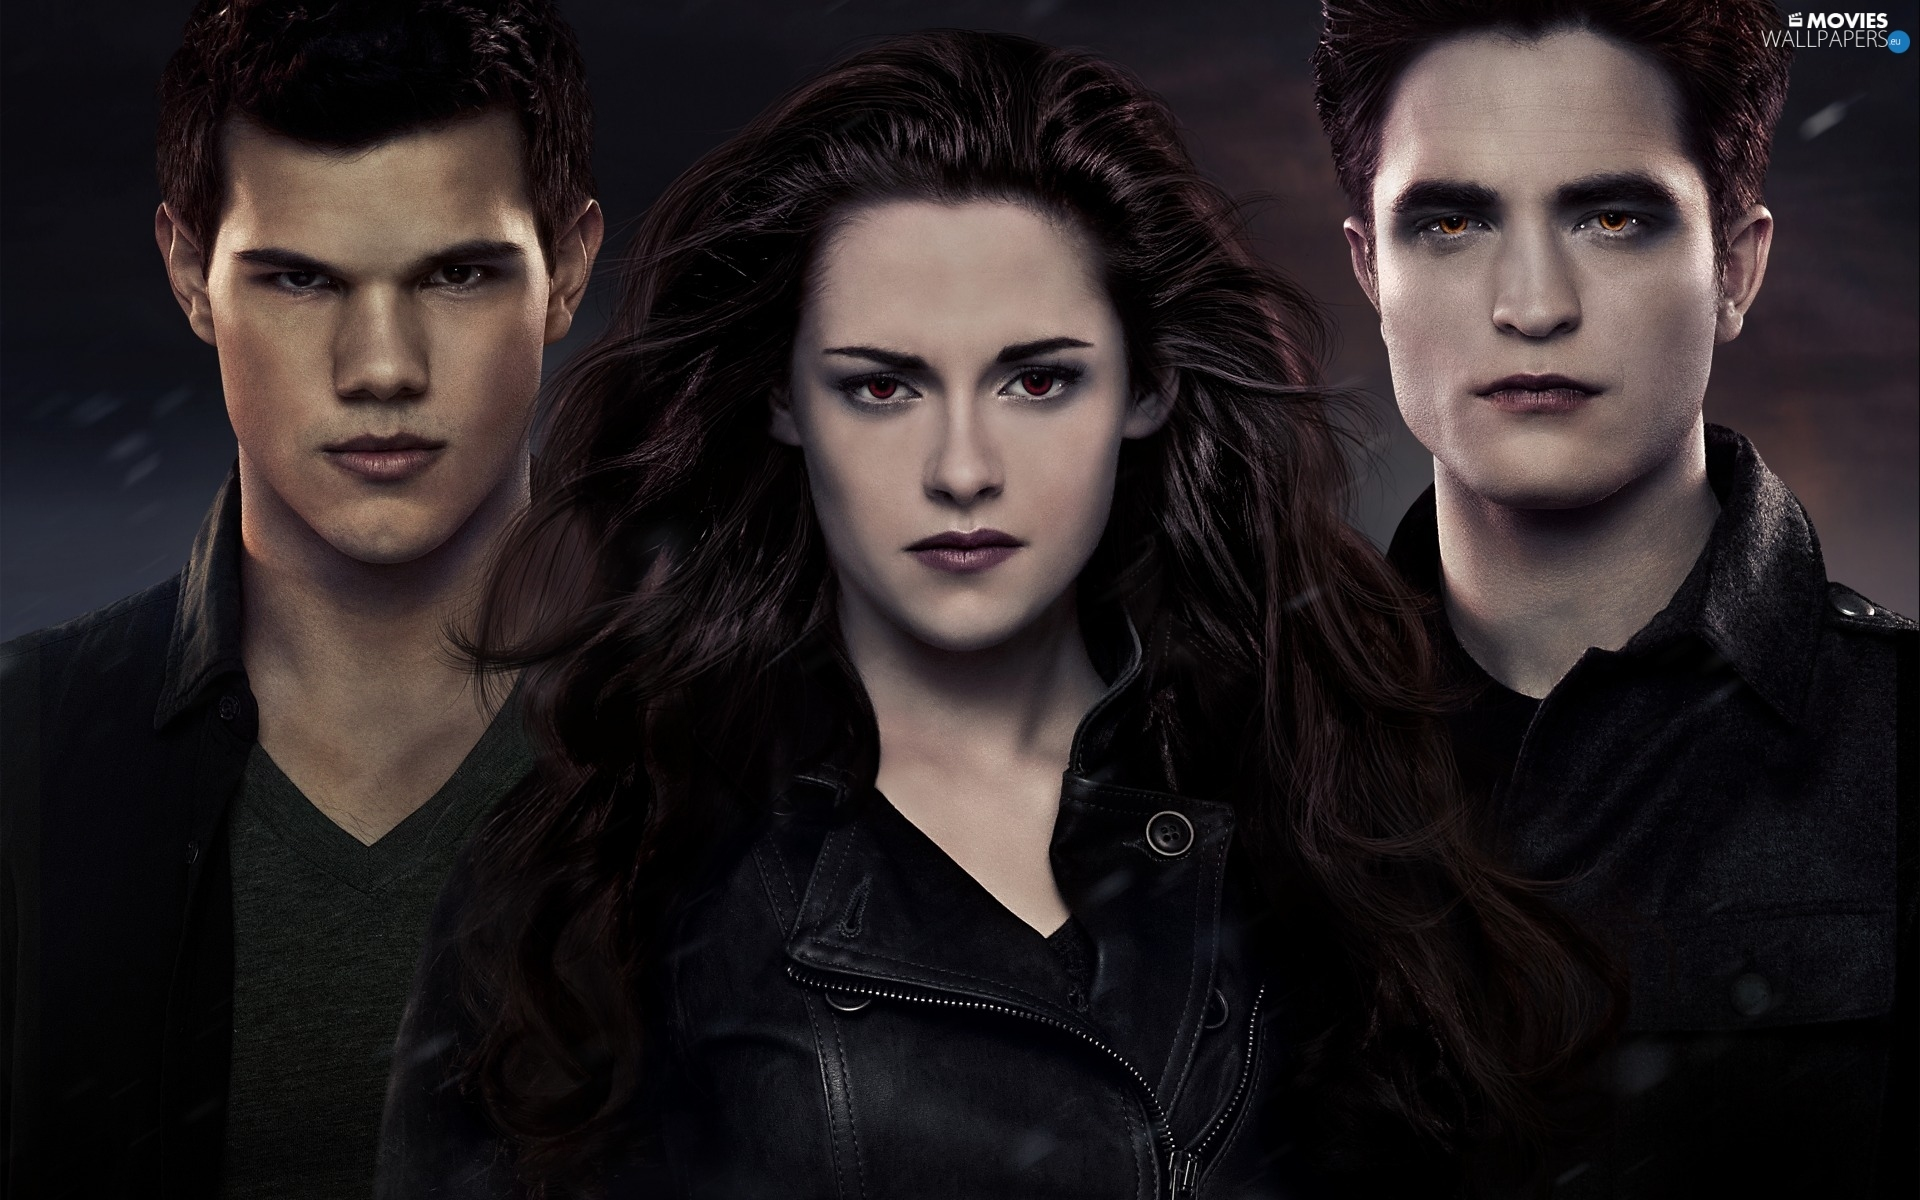 Actors, saga, Kristen Stewart, Robert Pattinson, Taylor Lautner, twilight